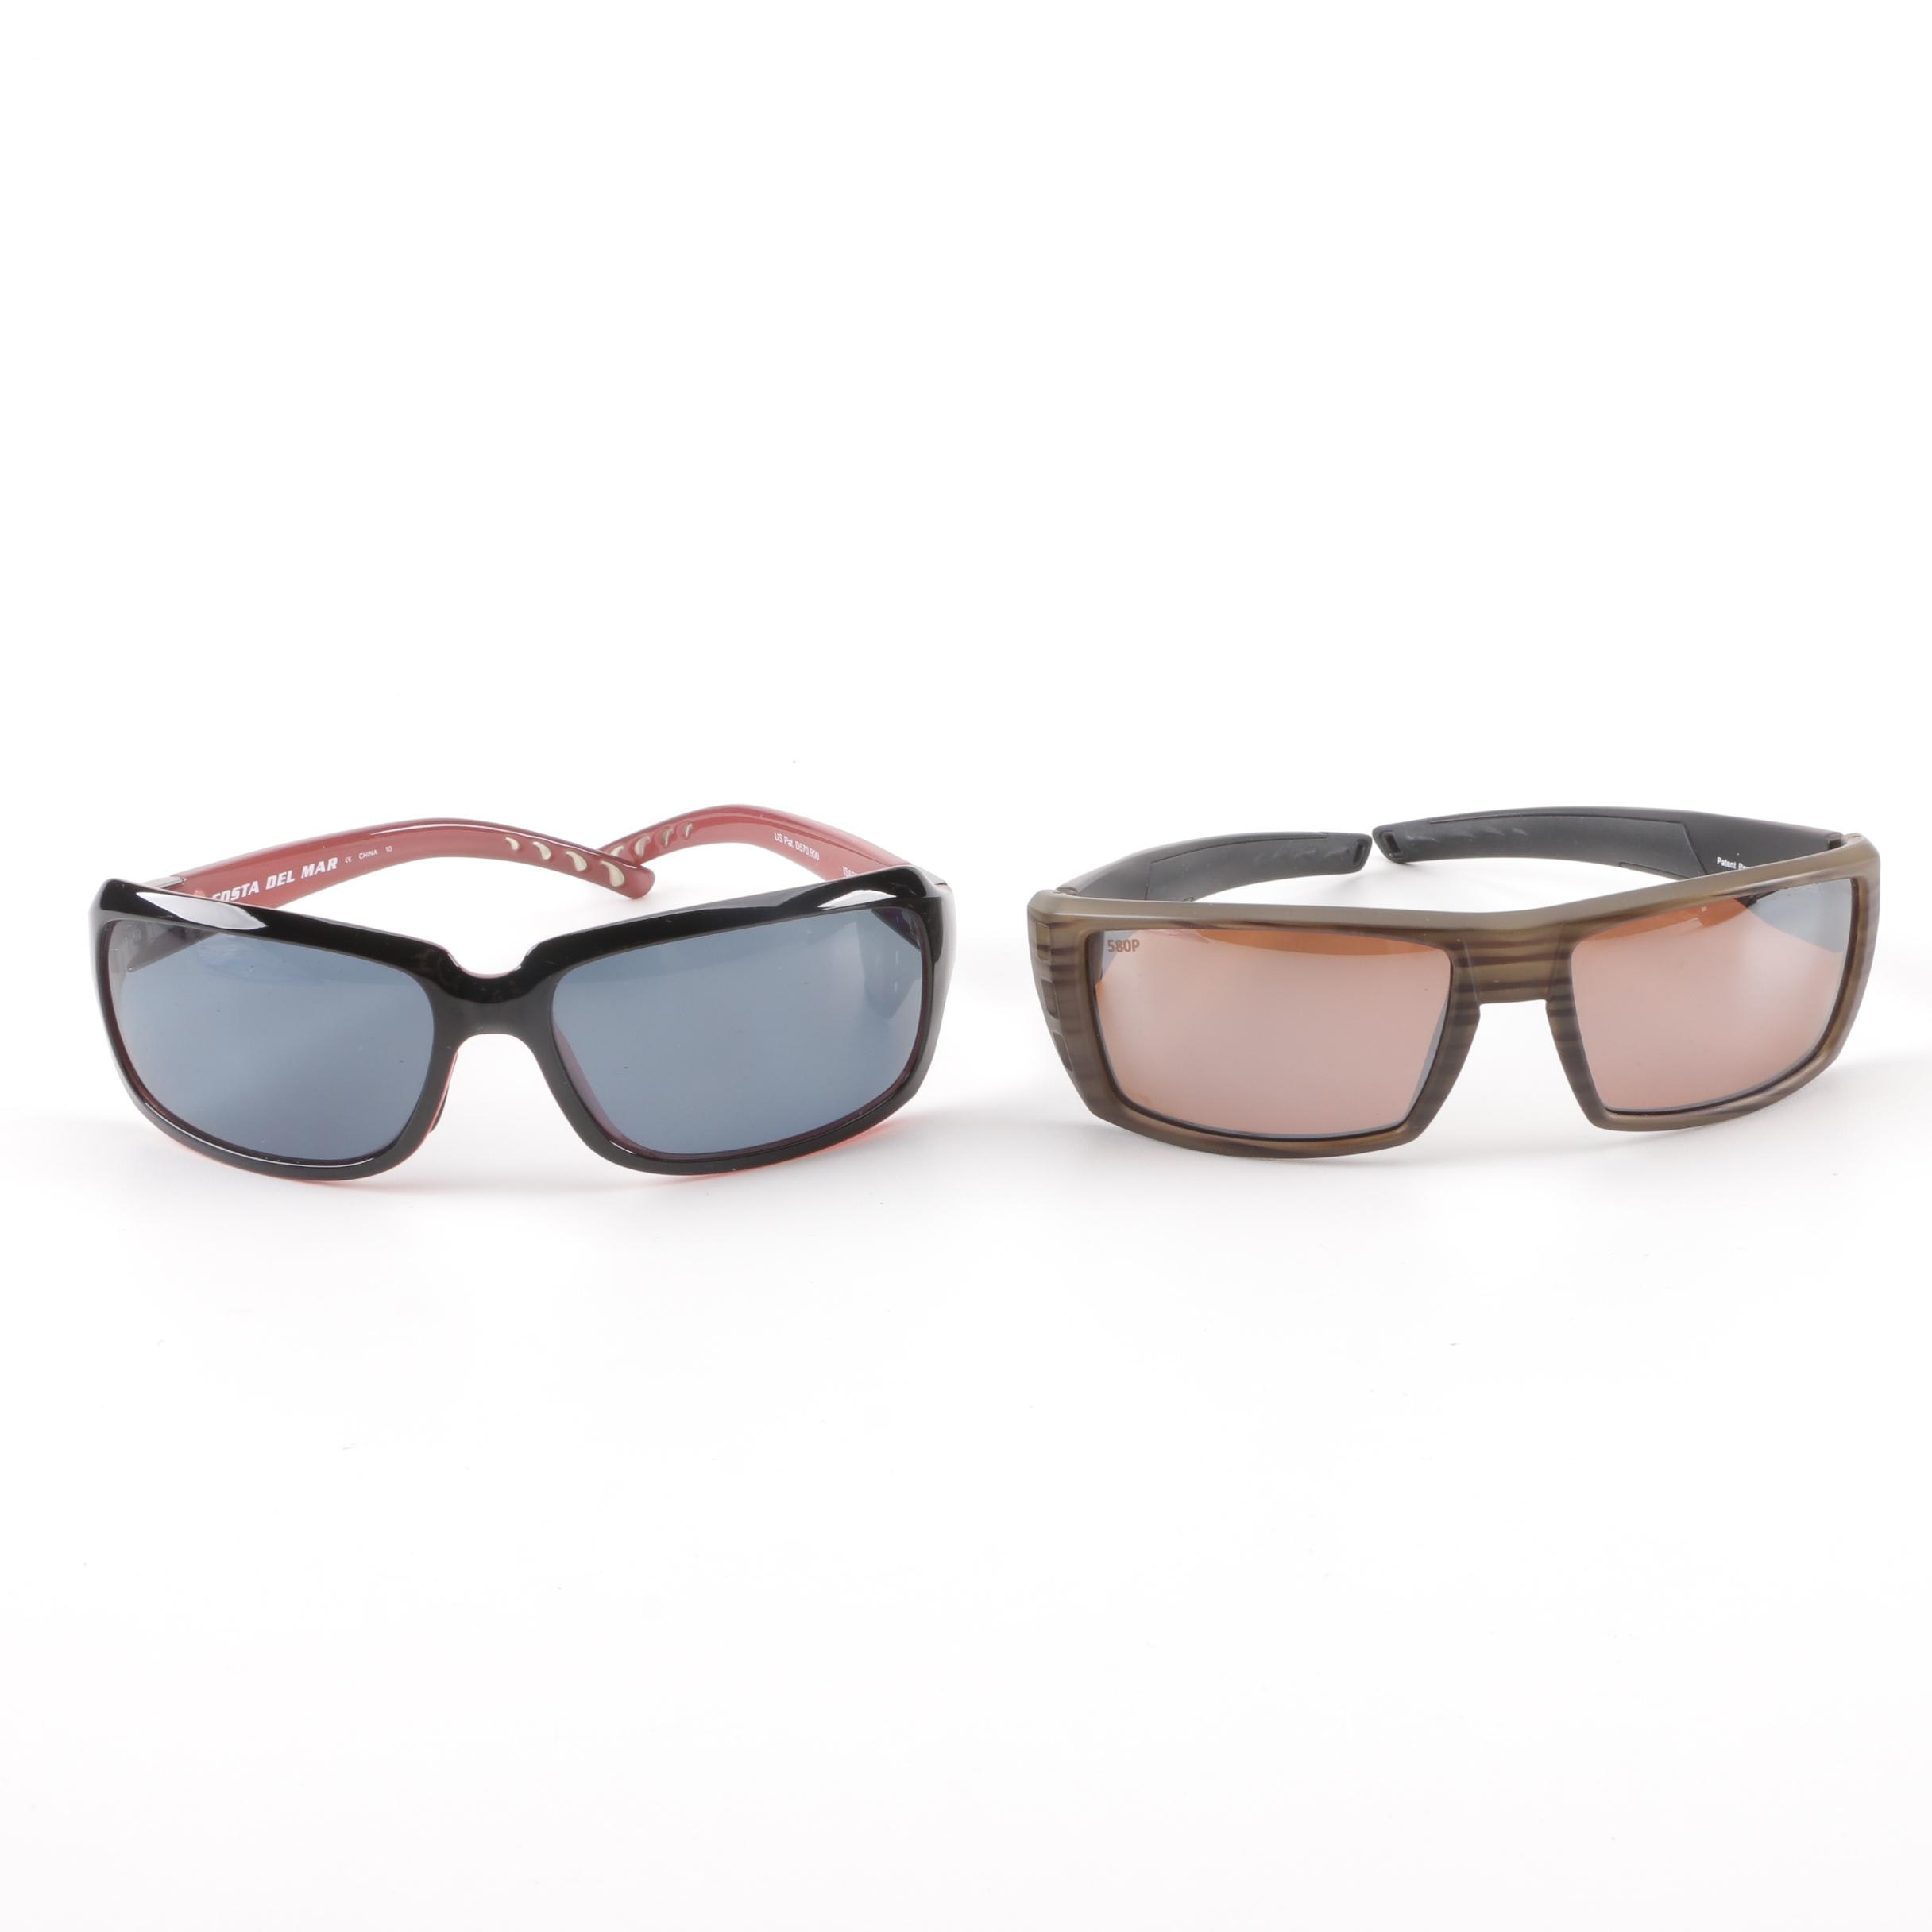 Costa Del Mar Rafael and Isabela Polarized Sunglasses with Case